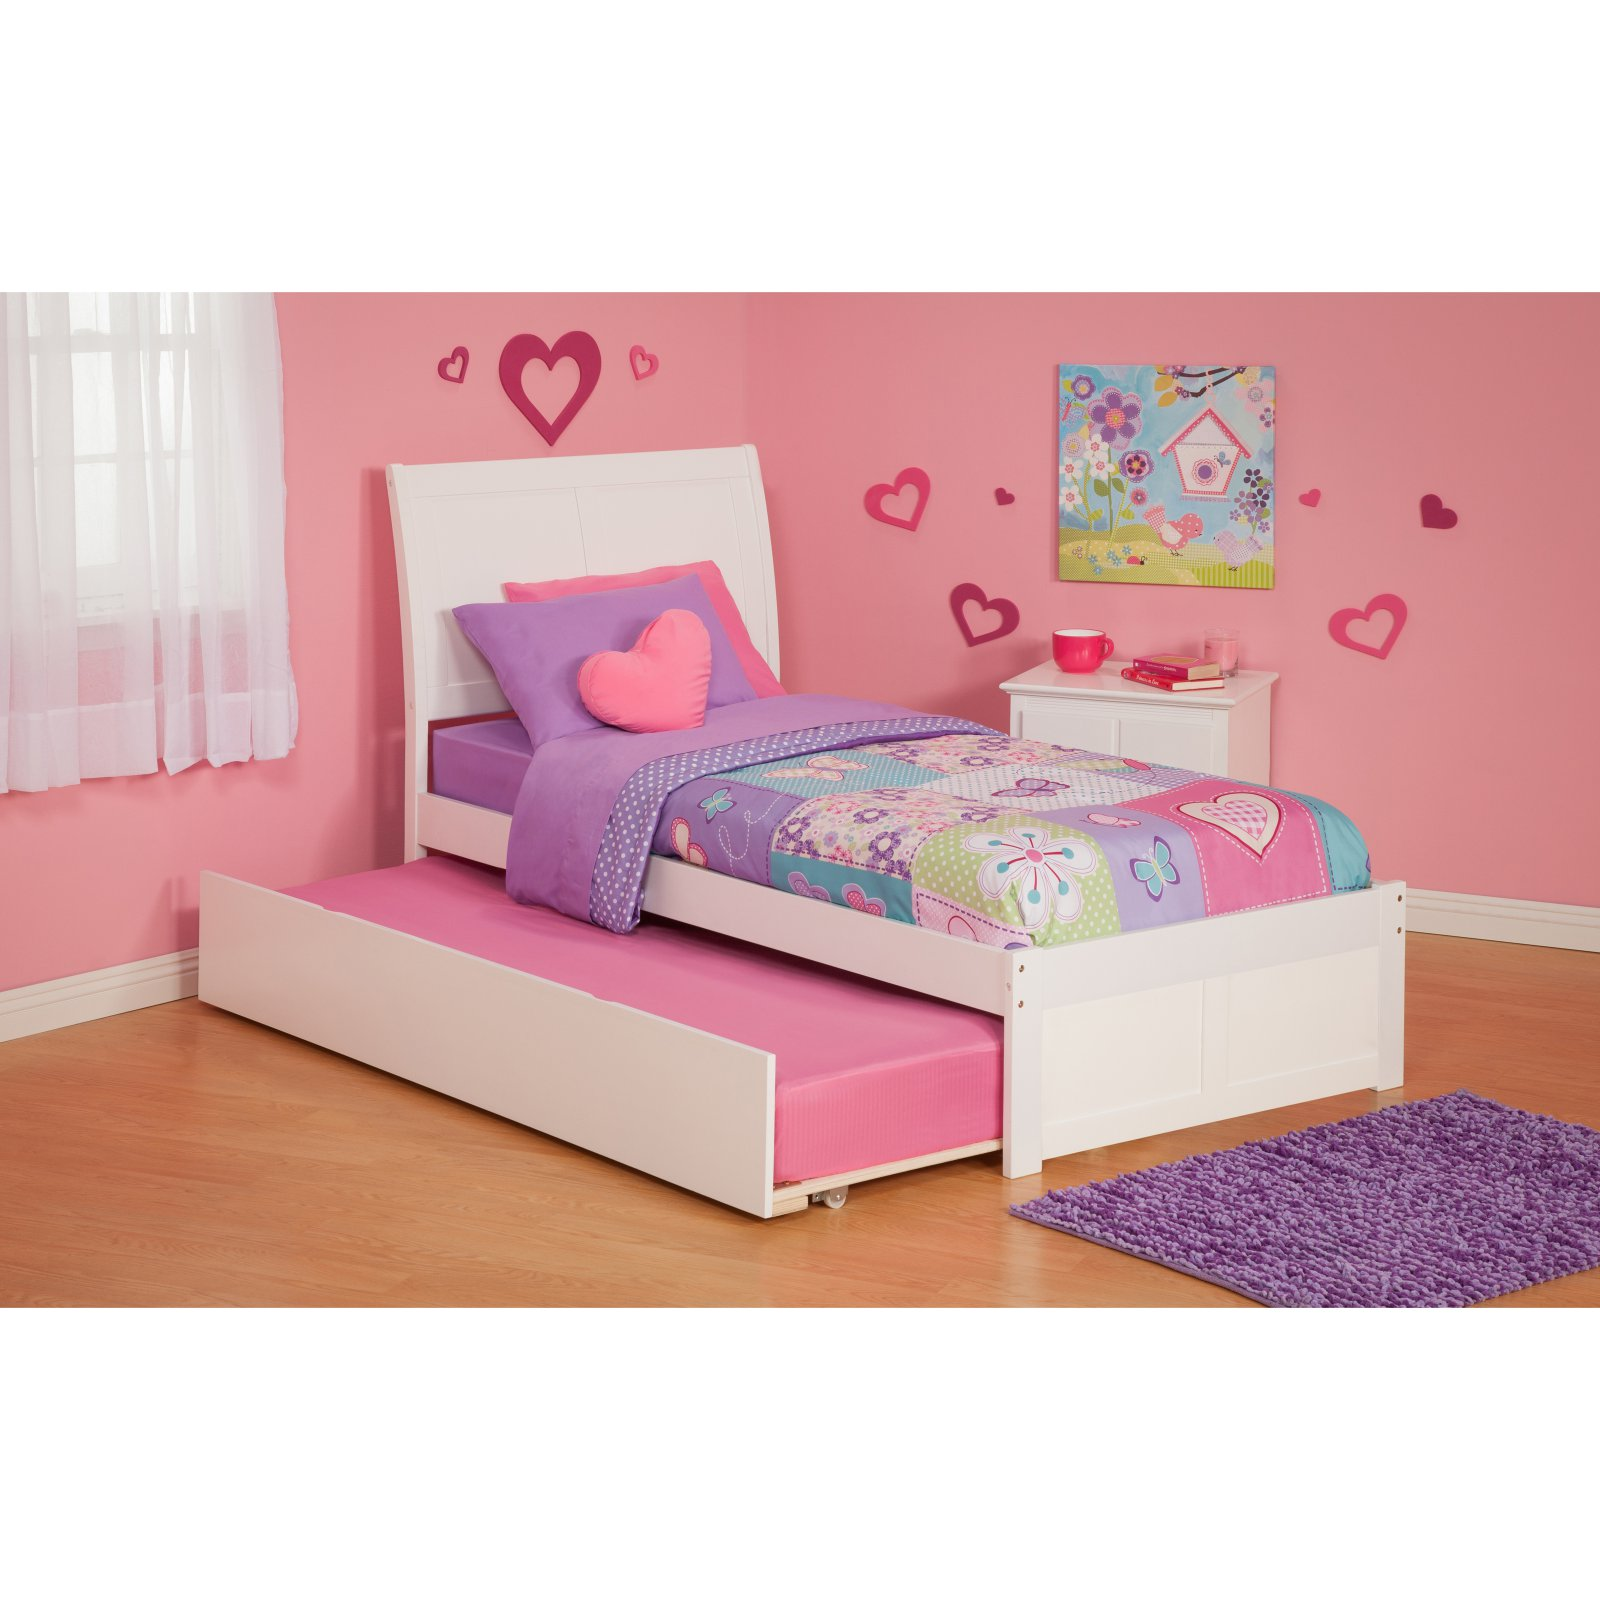 Portland Platform Bed with Flat Panel Foot Board and Twin Size Urban Trundle Bed, Multiple Colors, Multiple Sizes